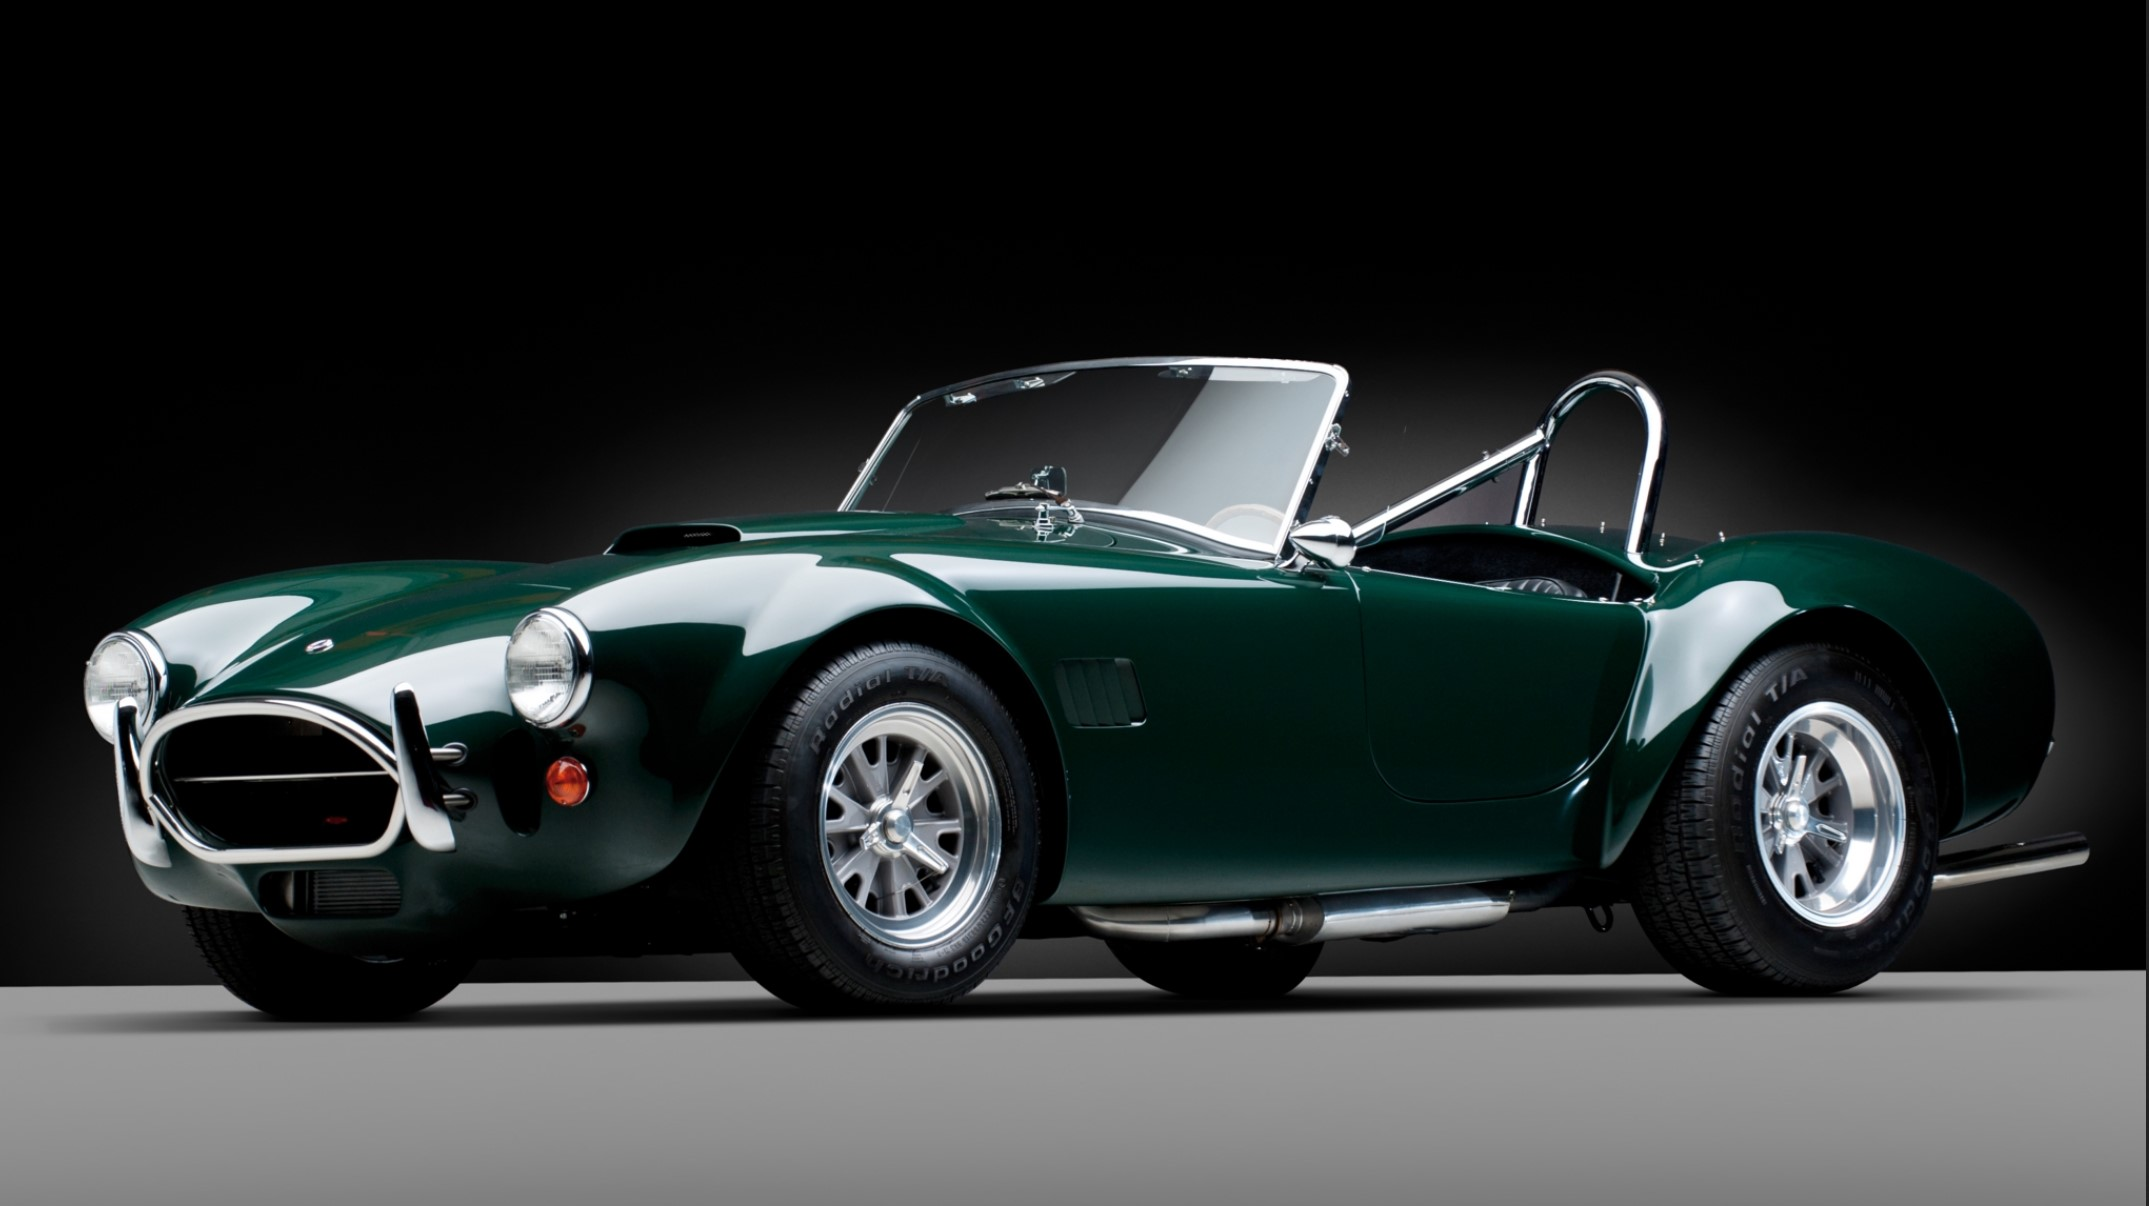 AC Cars has unveiled two new modifications of its Cobra roadster model, and both warrant a close examination because of their unique features. The launch celebrates 58 years from the release of Carroll Shelby's first vehicle.